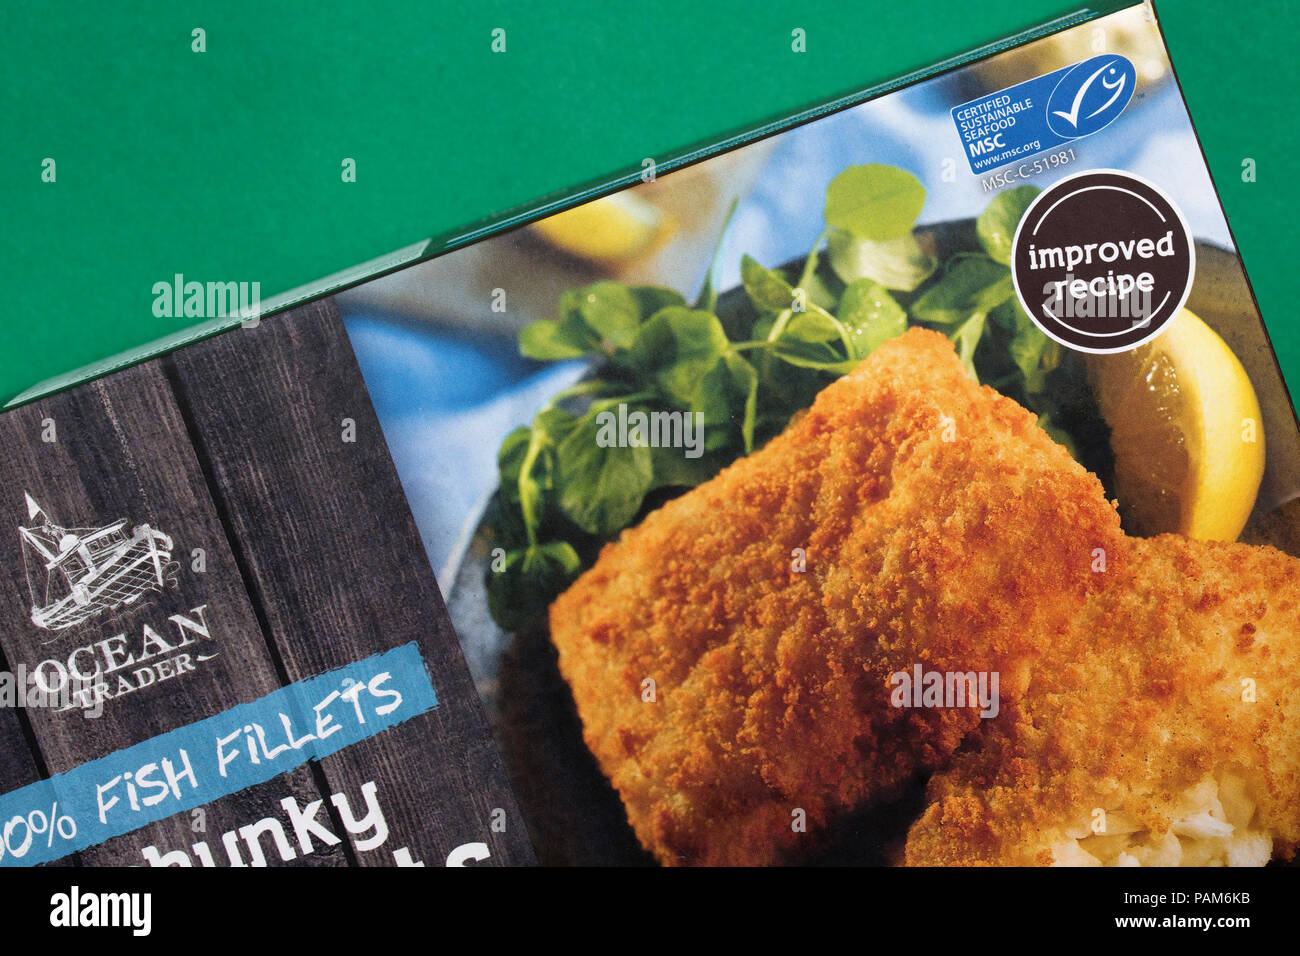 Cod fillets package with MSC certified sustainable food logo UK - Stock Image